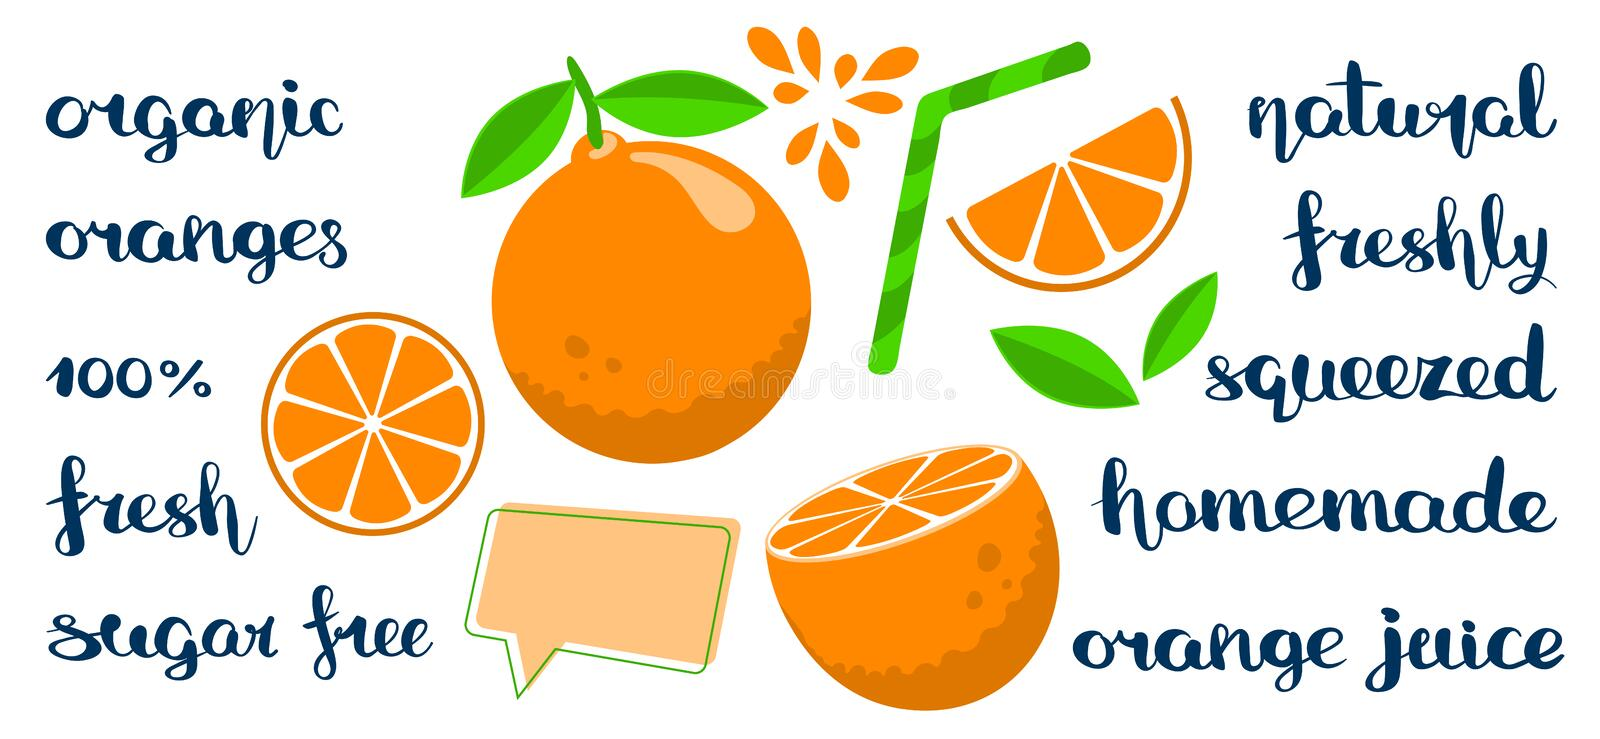 Set with flat style oranges. A set of cut and whole oranges with handwritten fruit-related marketing descriptions. Flat style editable vector illustration with vector illustration